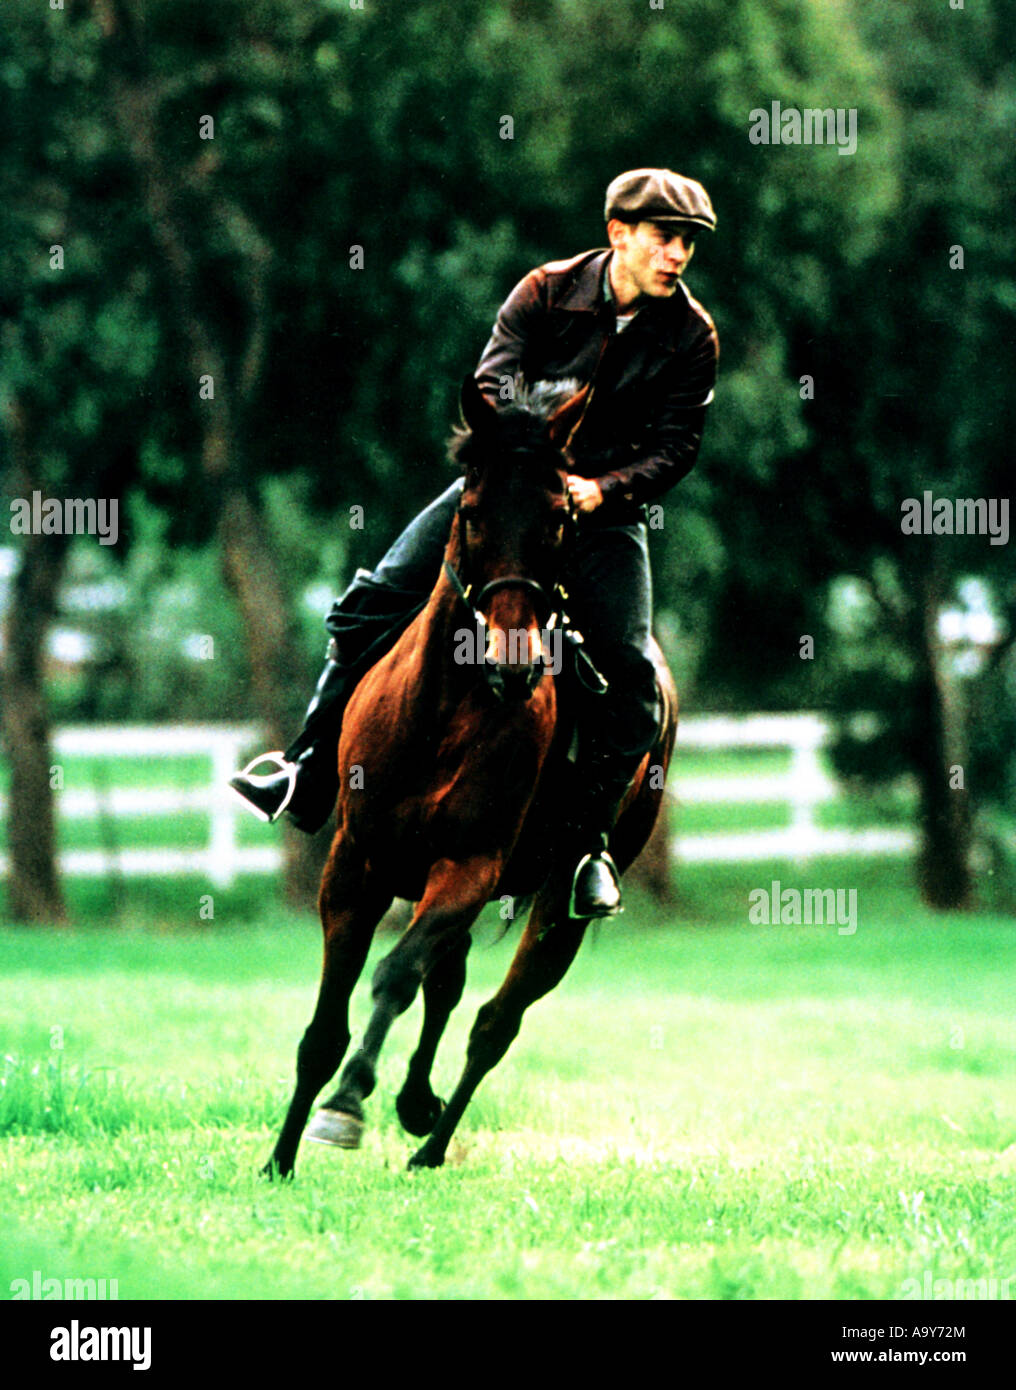 SEABISCUIT - 2003 Universal film with Tobey McGuire - Stock Image